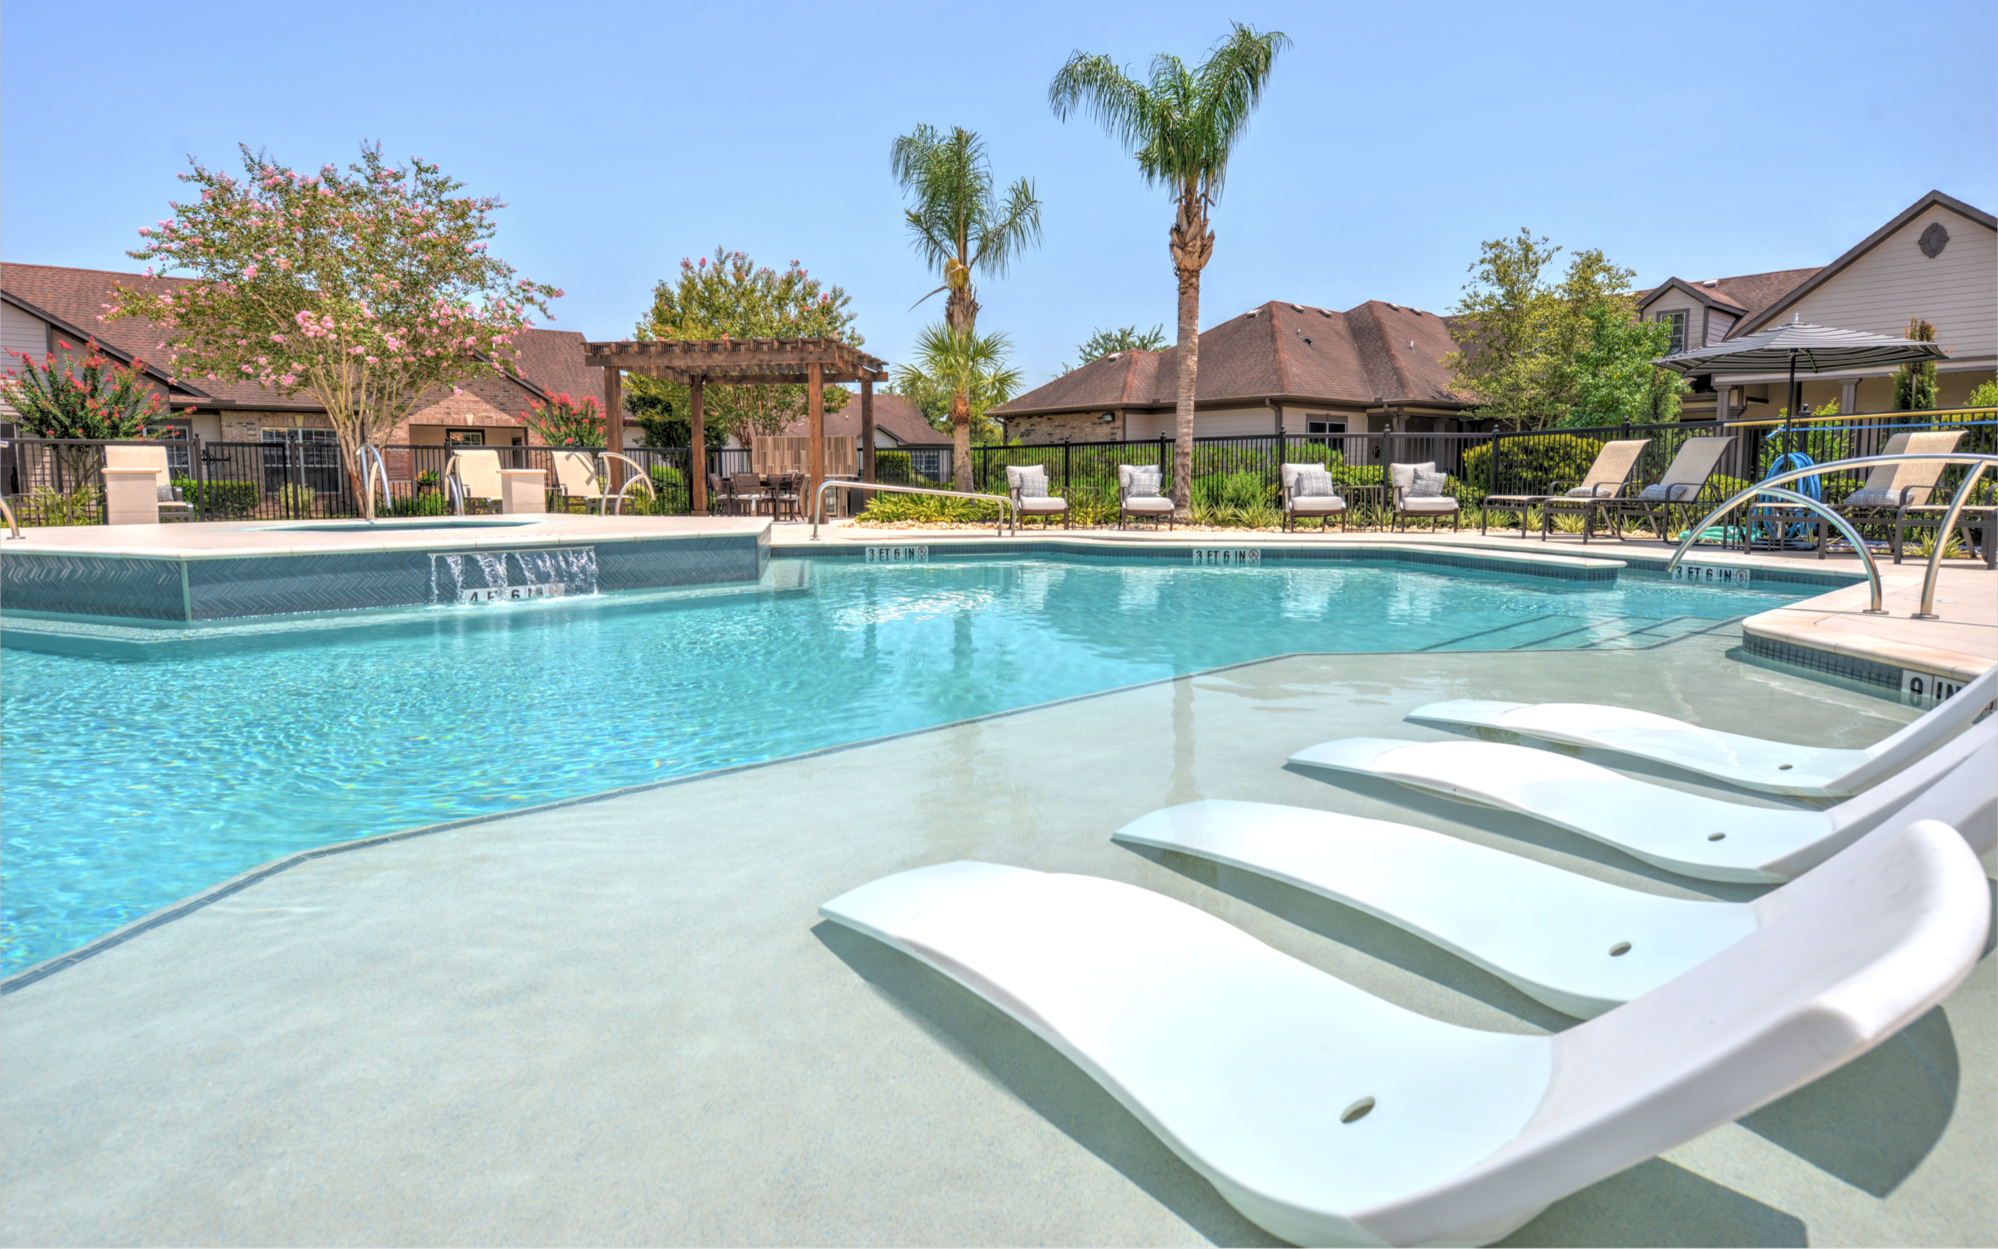 Attiva Pearland 55+ Active Living for rent